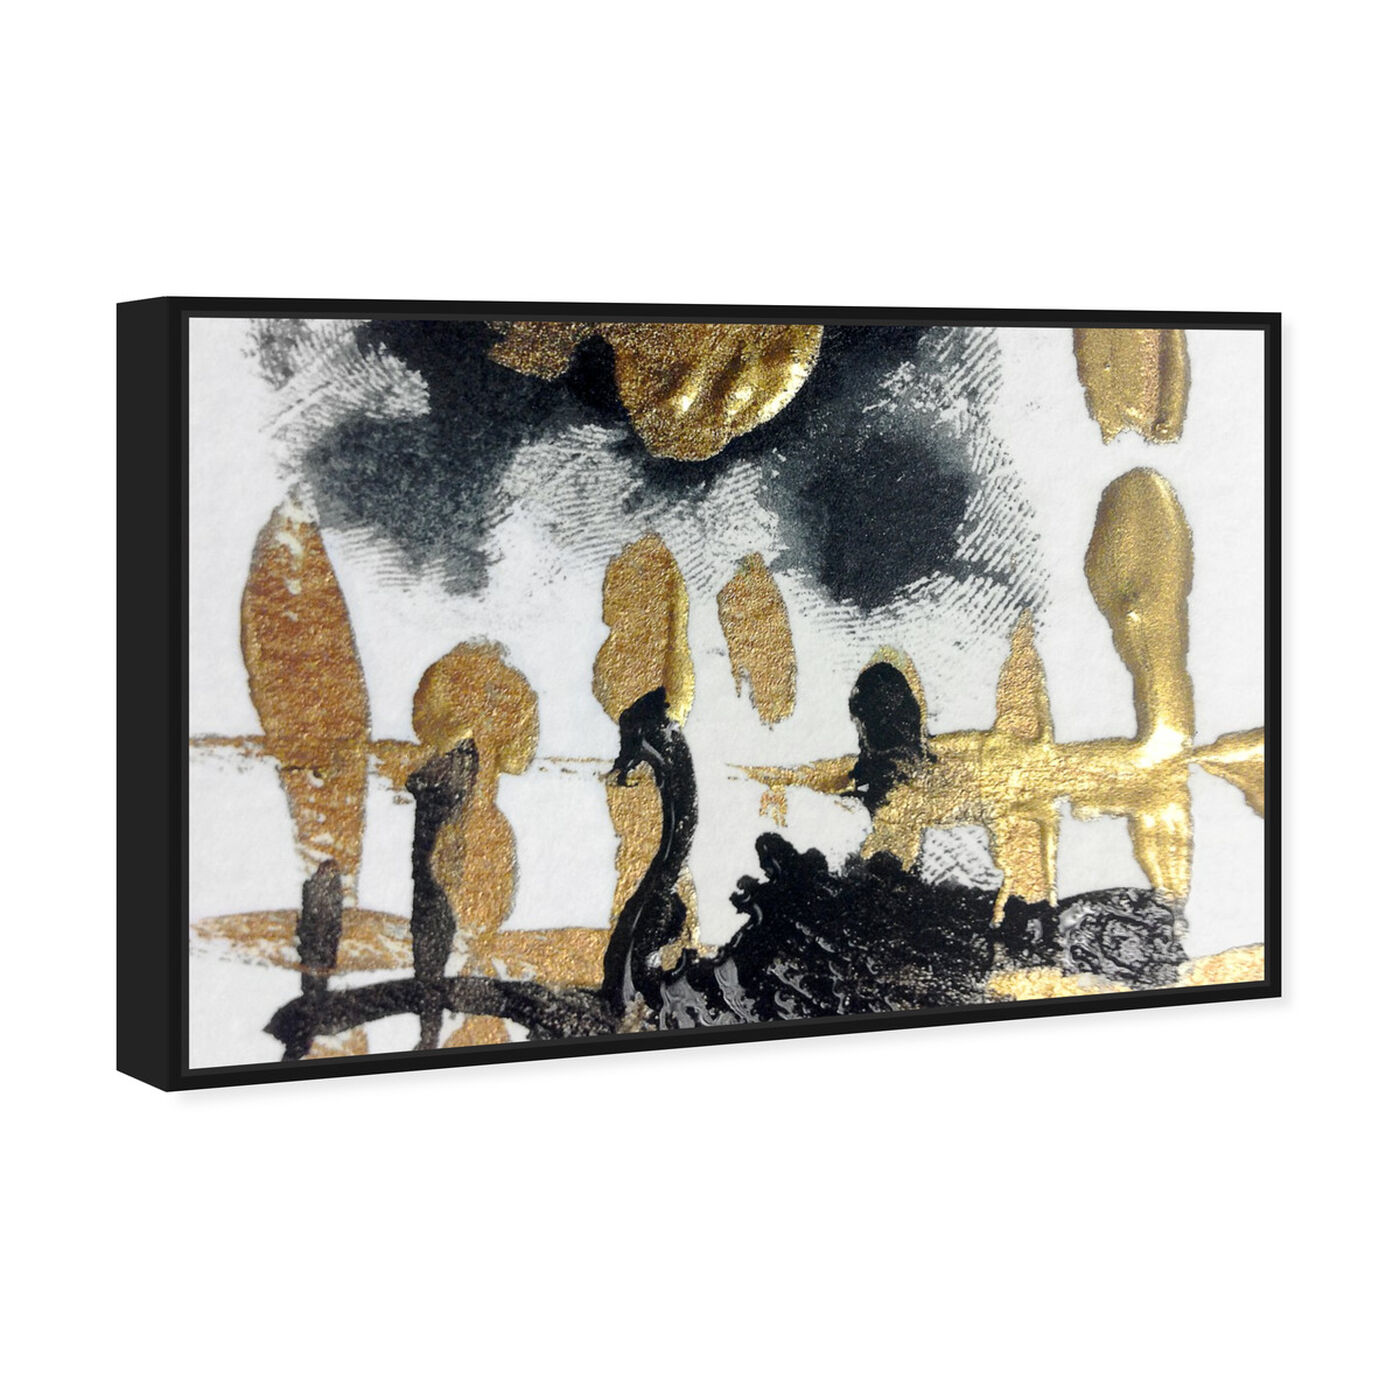 Angled view of Nozze di Figaro - Signature Collection featuring abstract and paint art.